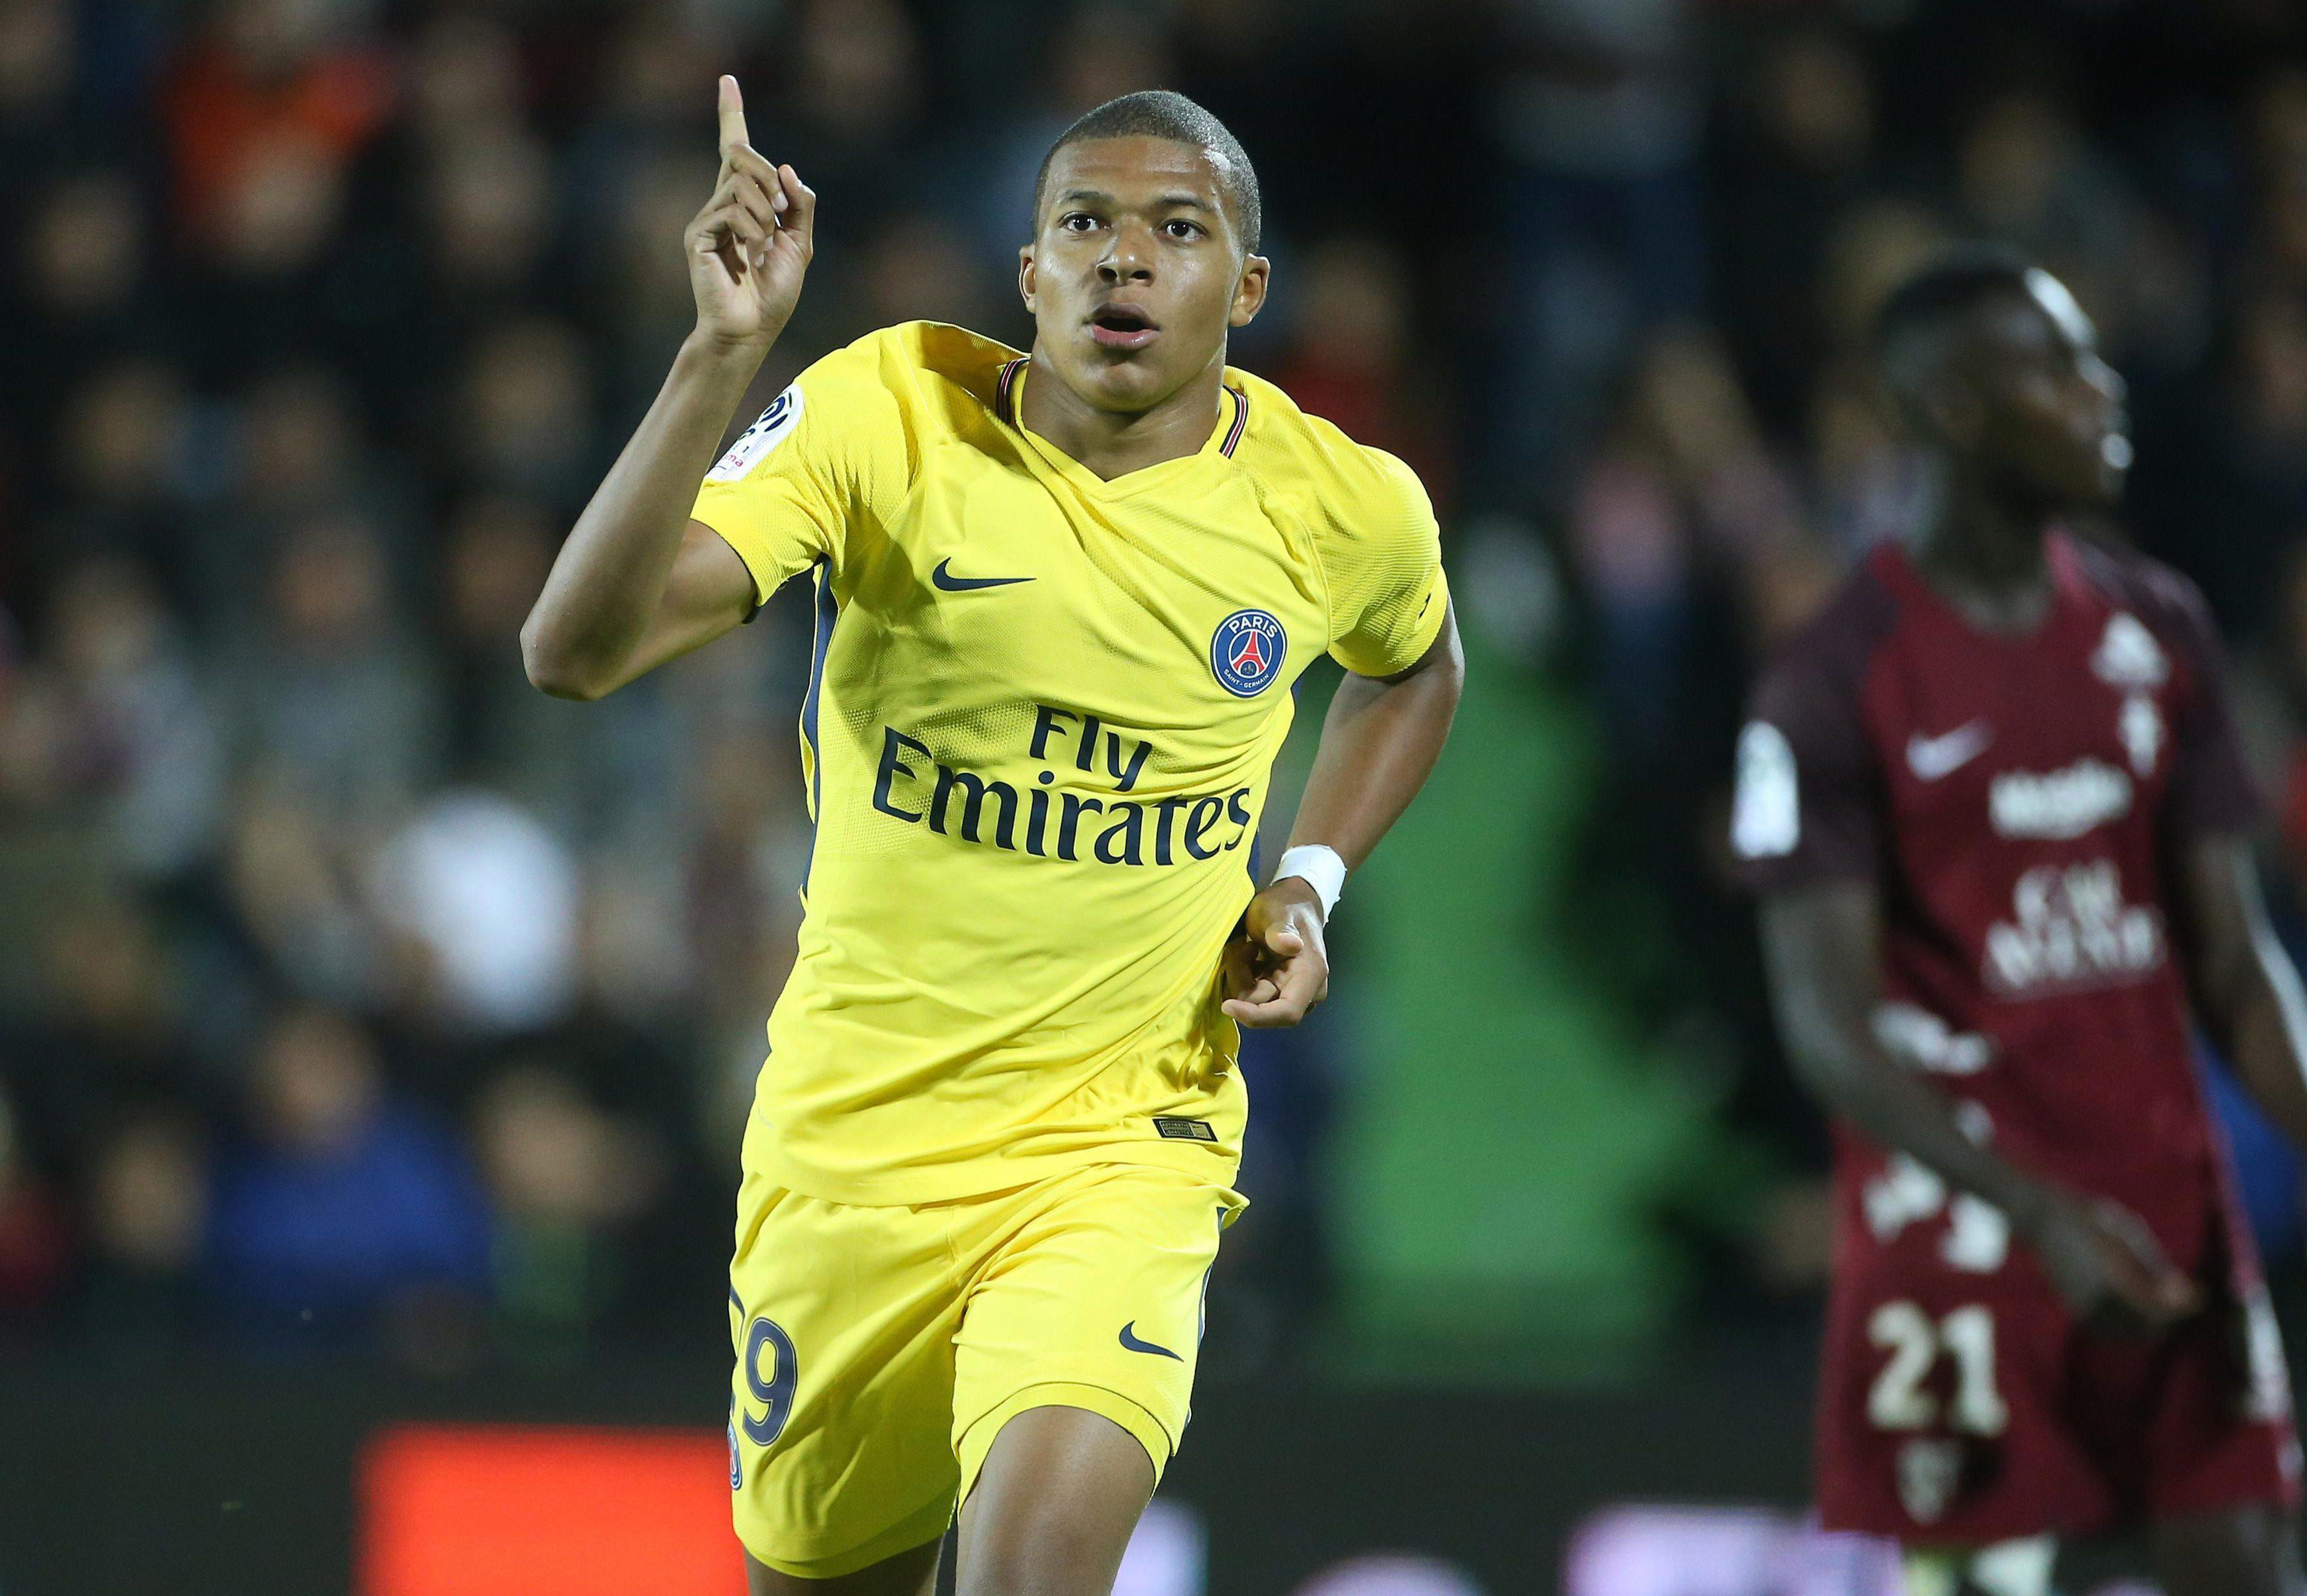 Mbappe scored in his debut for PSG